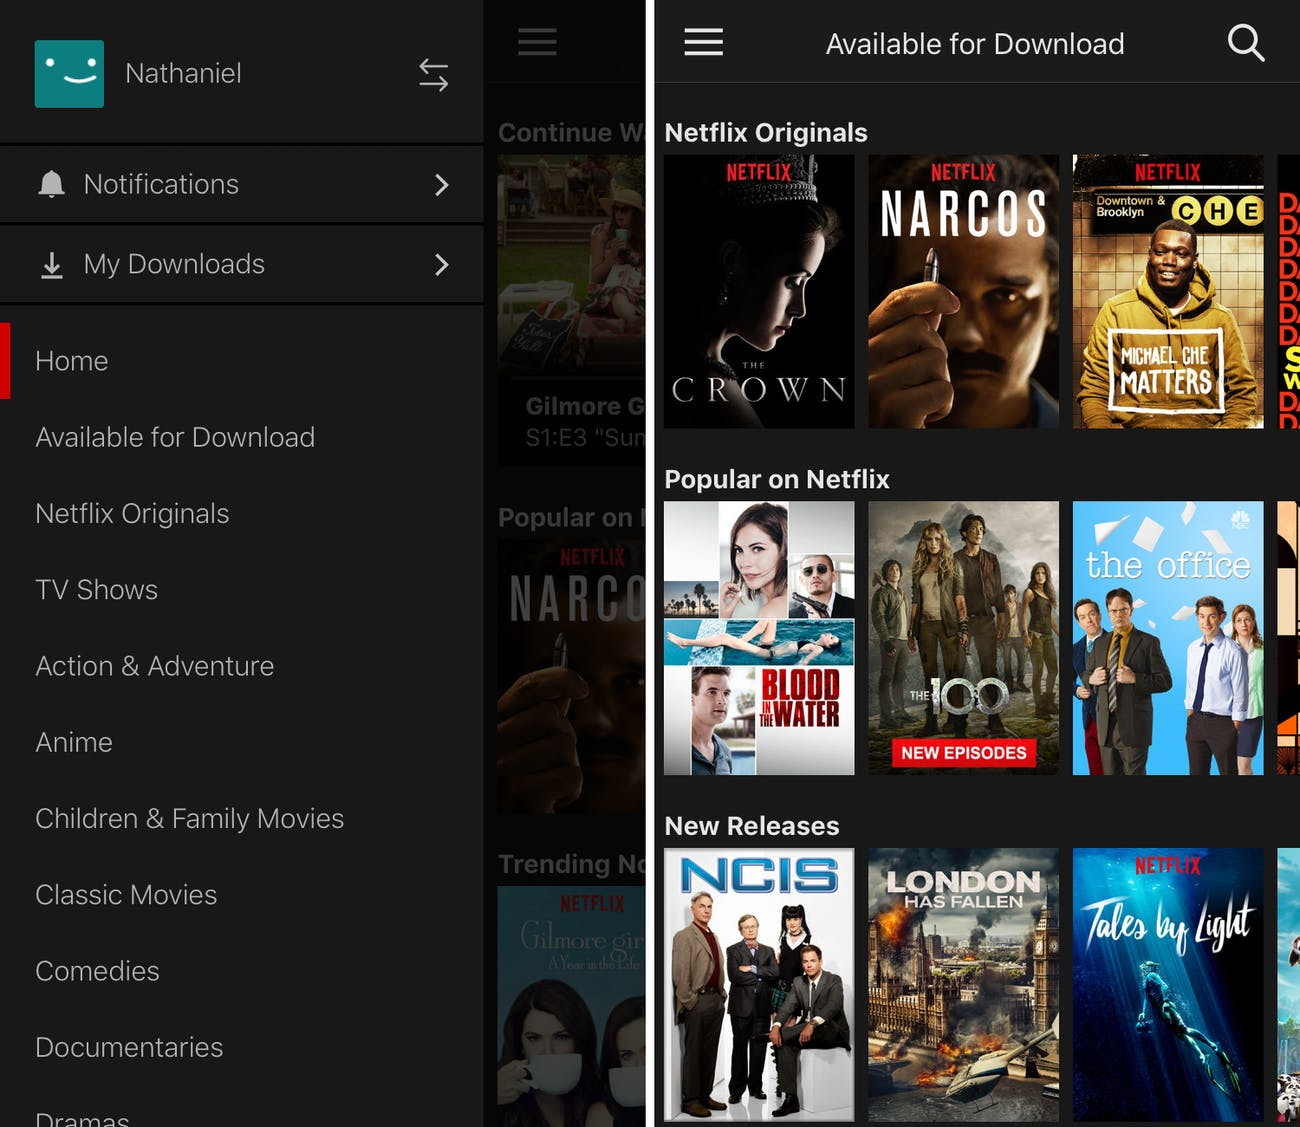 How to See All the Netflix Shows Available for Download